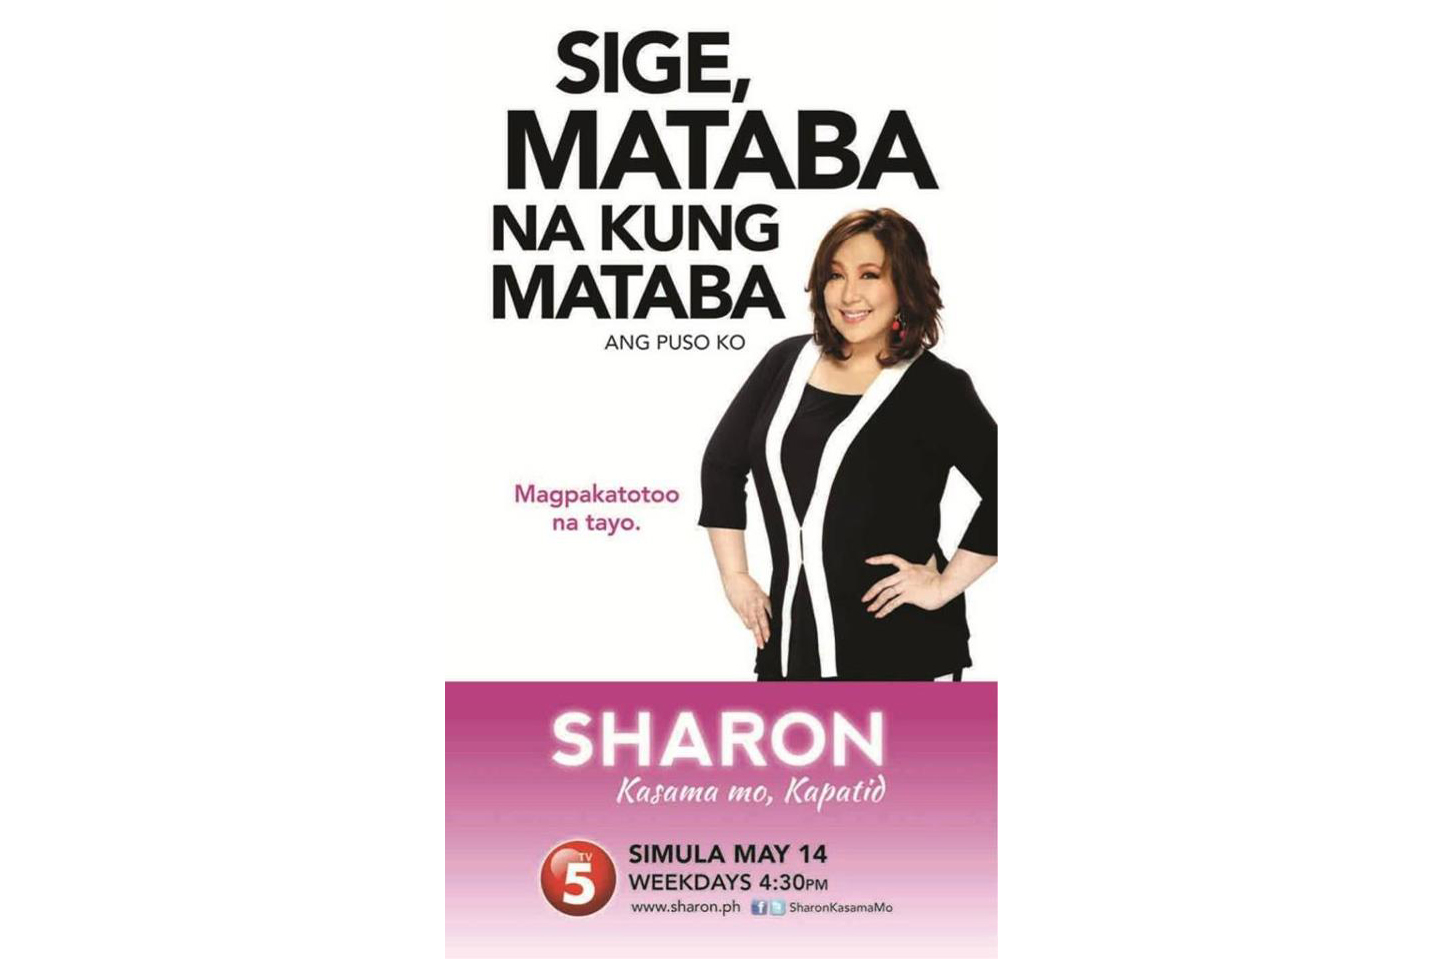 577762_10150747040696801_38395351800_9753114_214581501_n - Sharon Cuneta: Mataba Na Kung Mataba - Philippine Photo Gallery